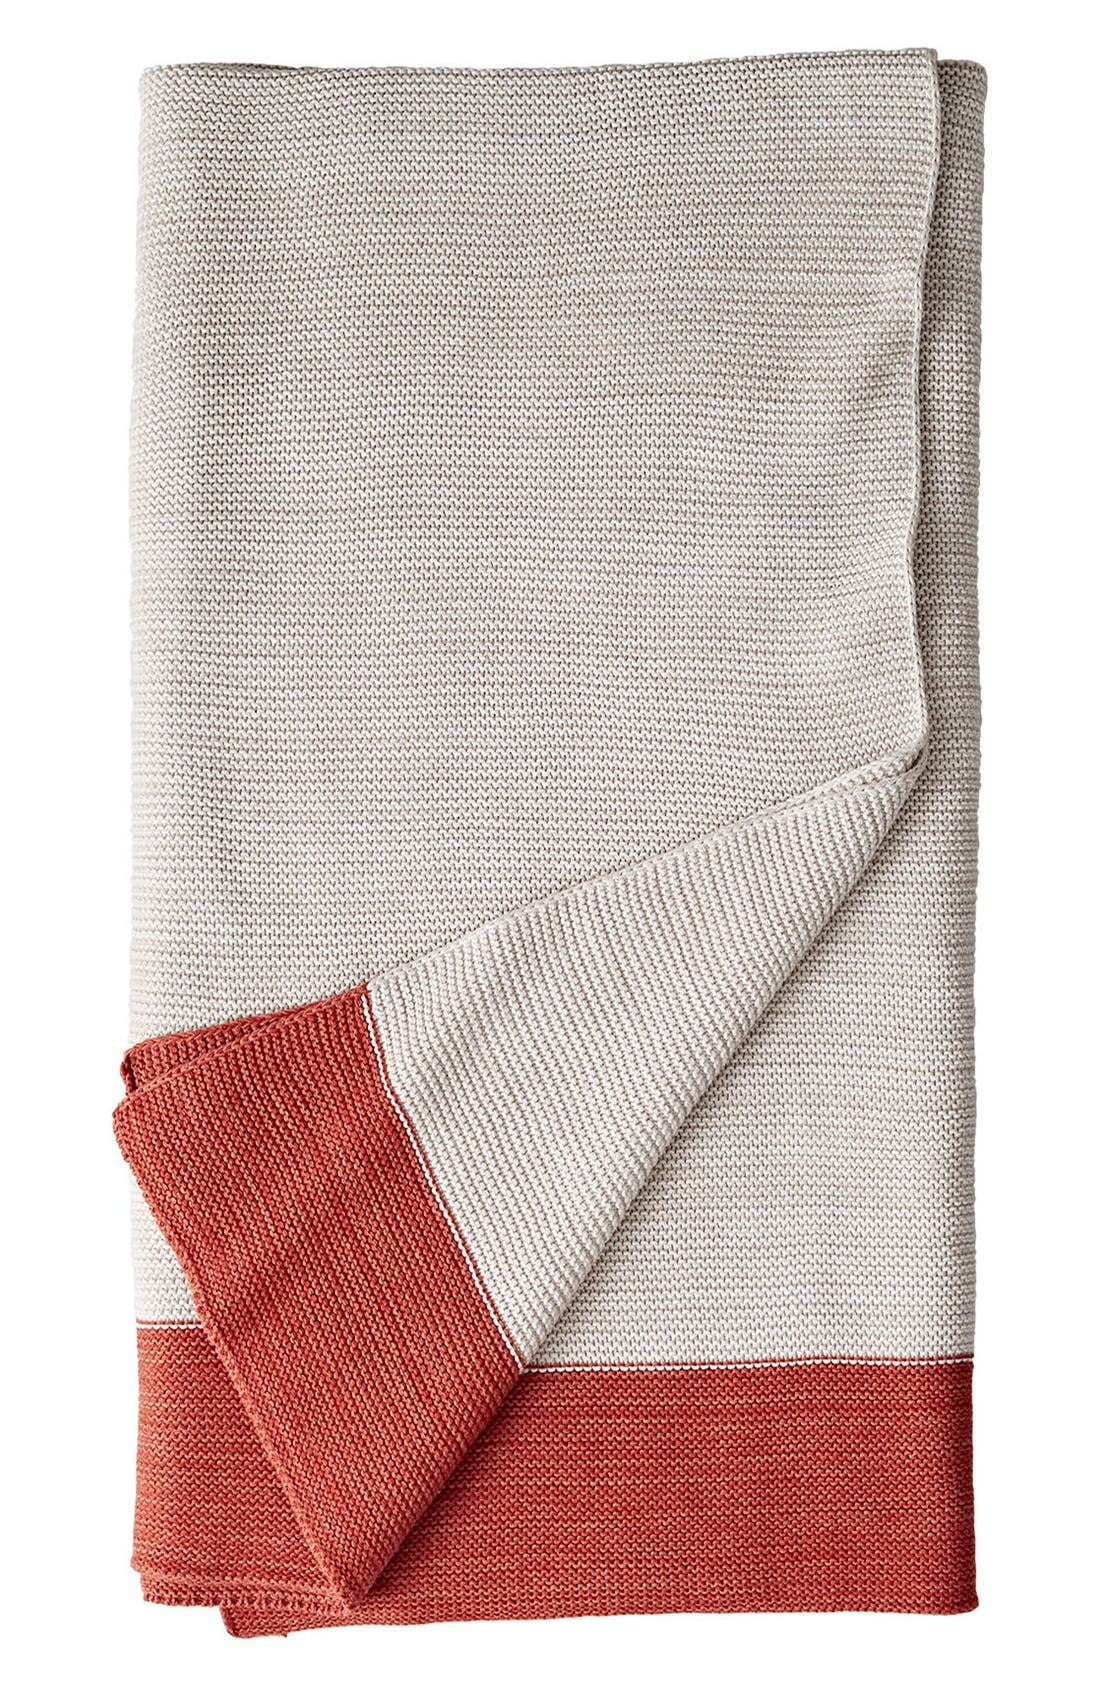 Marled Knit Throw,                         Main,                         color, Red